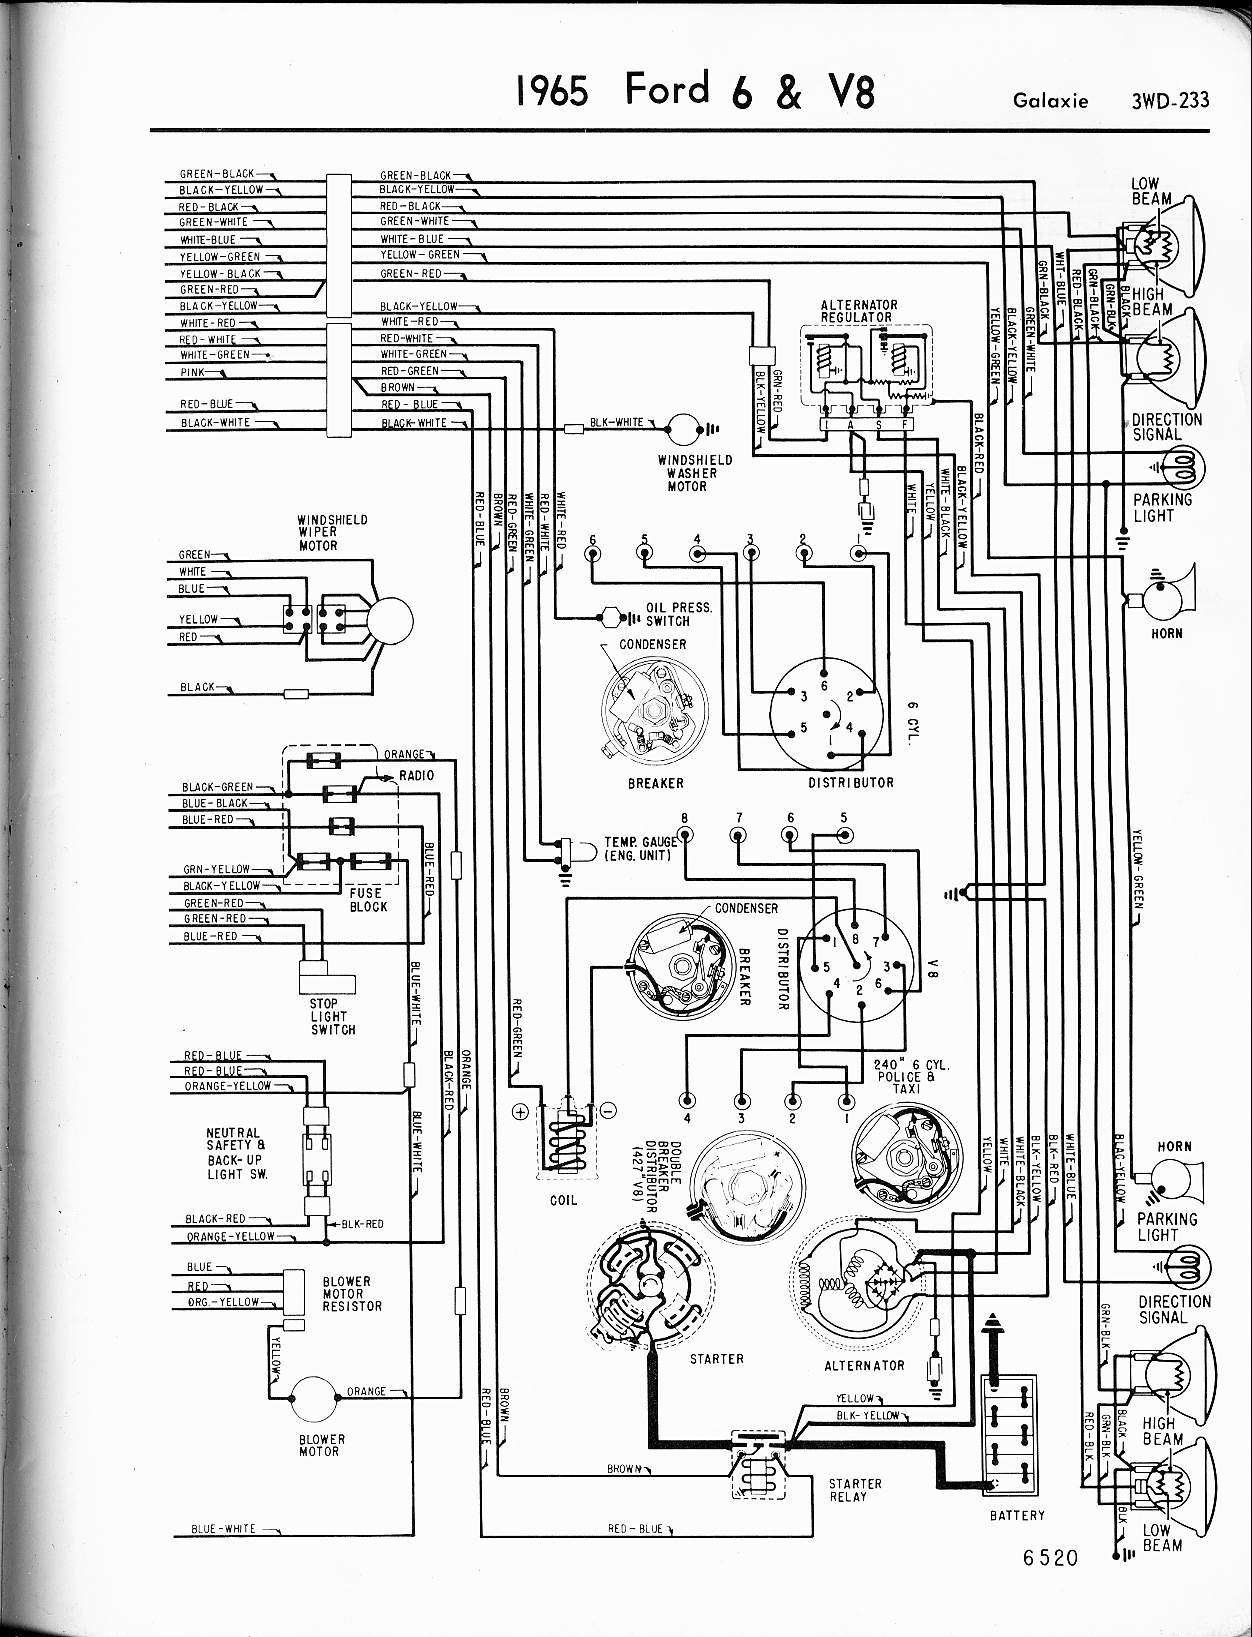 1966 ford f100 wiring schematic wiring diagram database67 f100 solenoid wiring wiring diagram data 66 ford f100 wiring diagram 1966 ford f100 wiring schematic